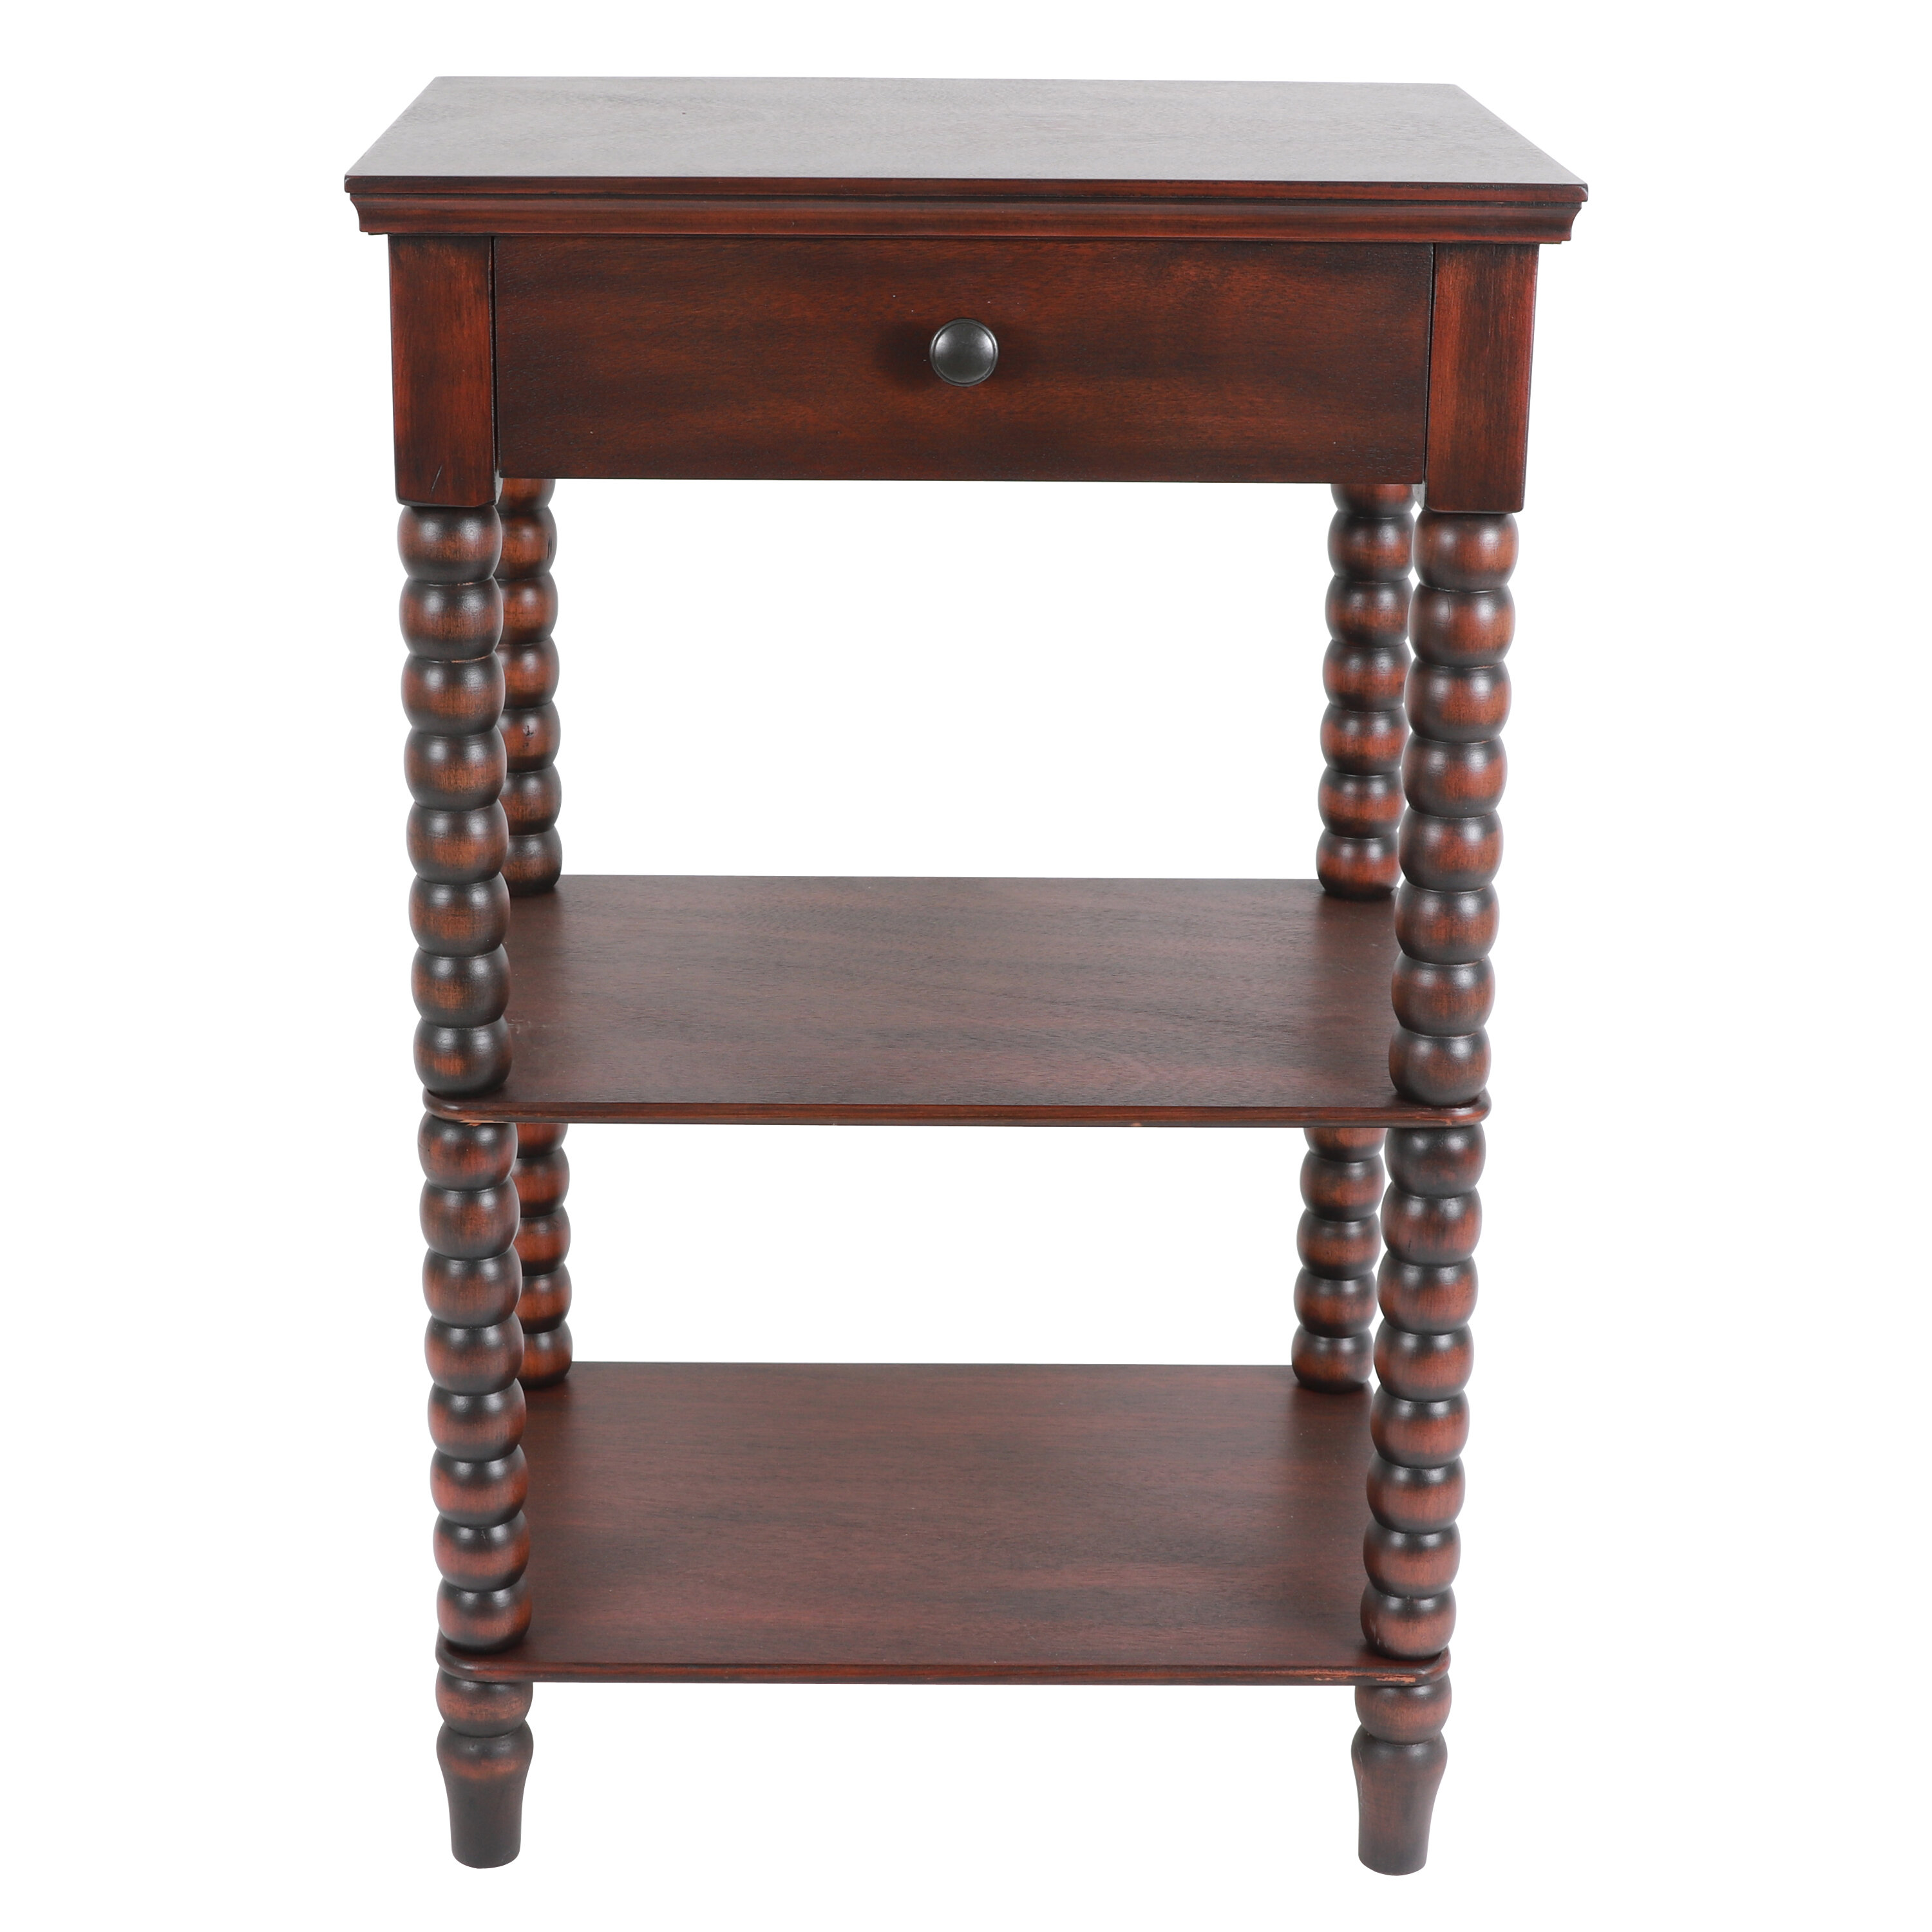 17ddd1f14c6 Jolie Spindle End Table with Storage